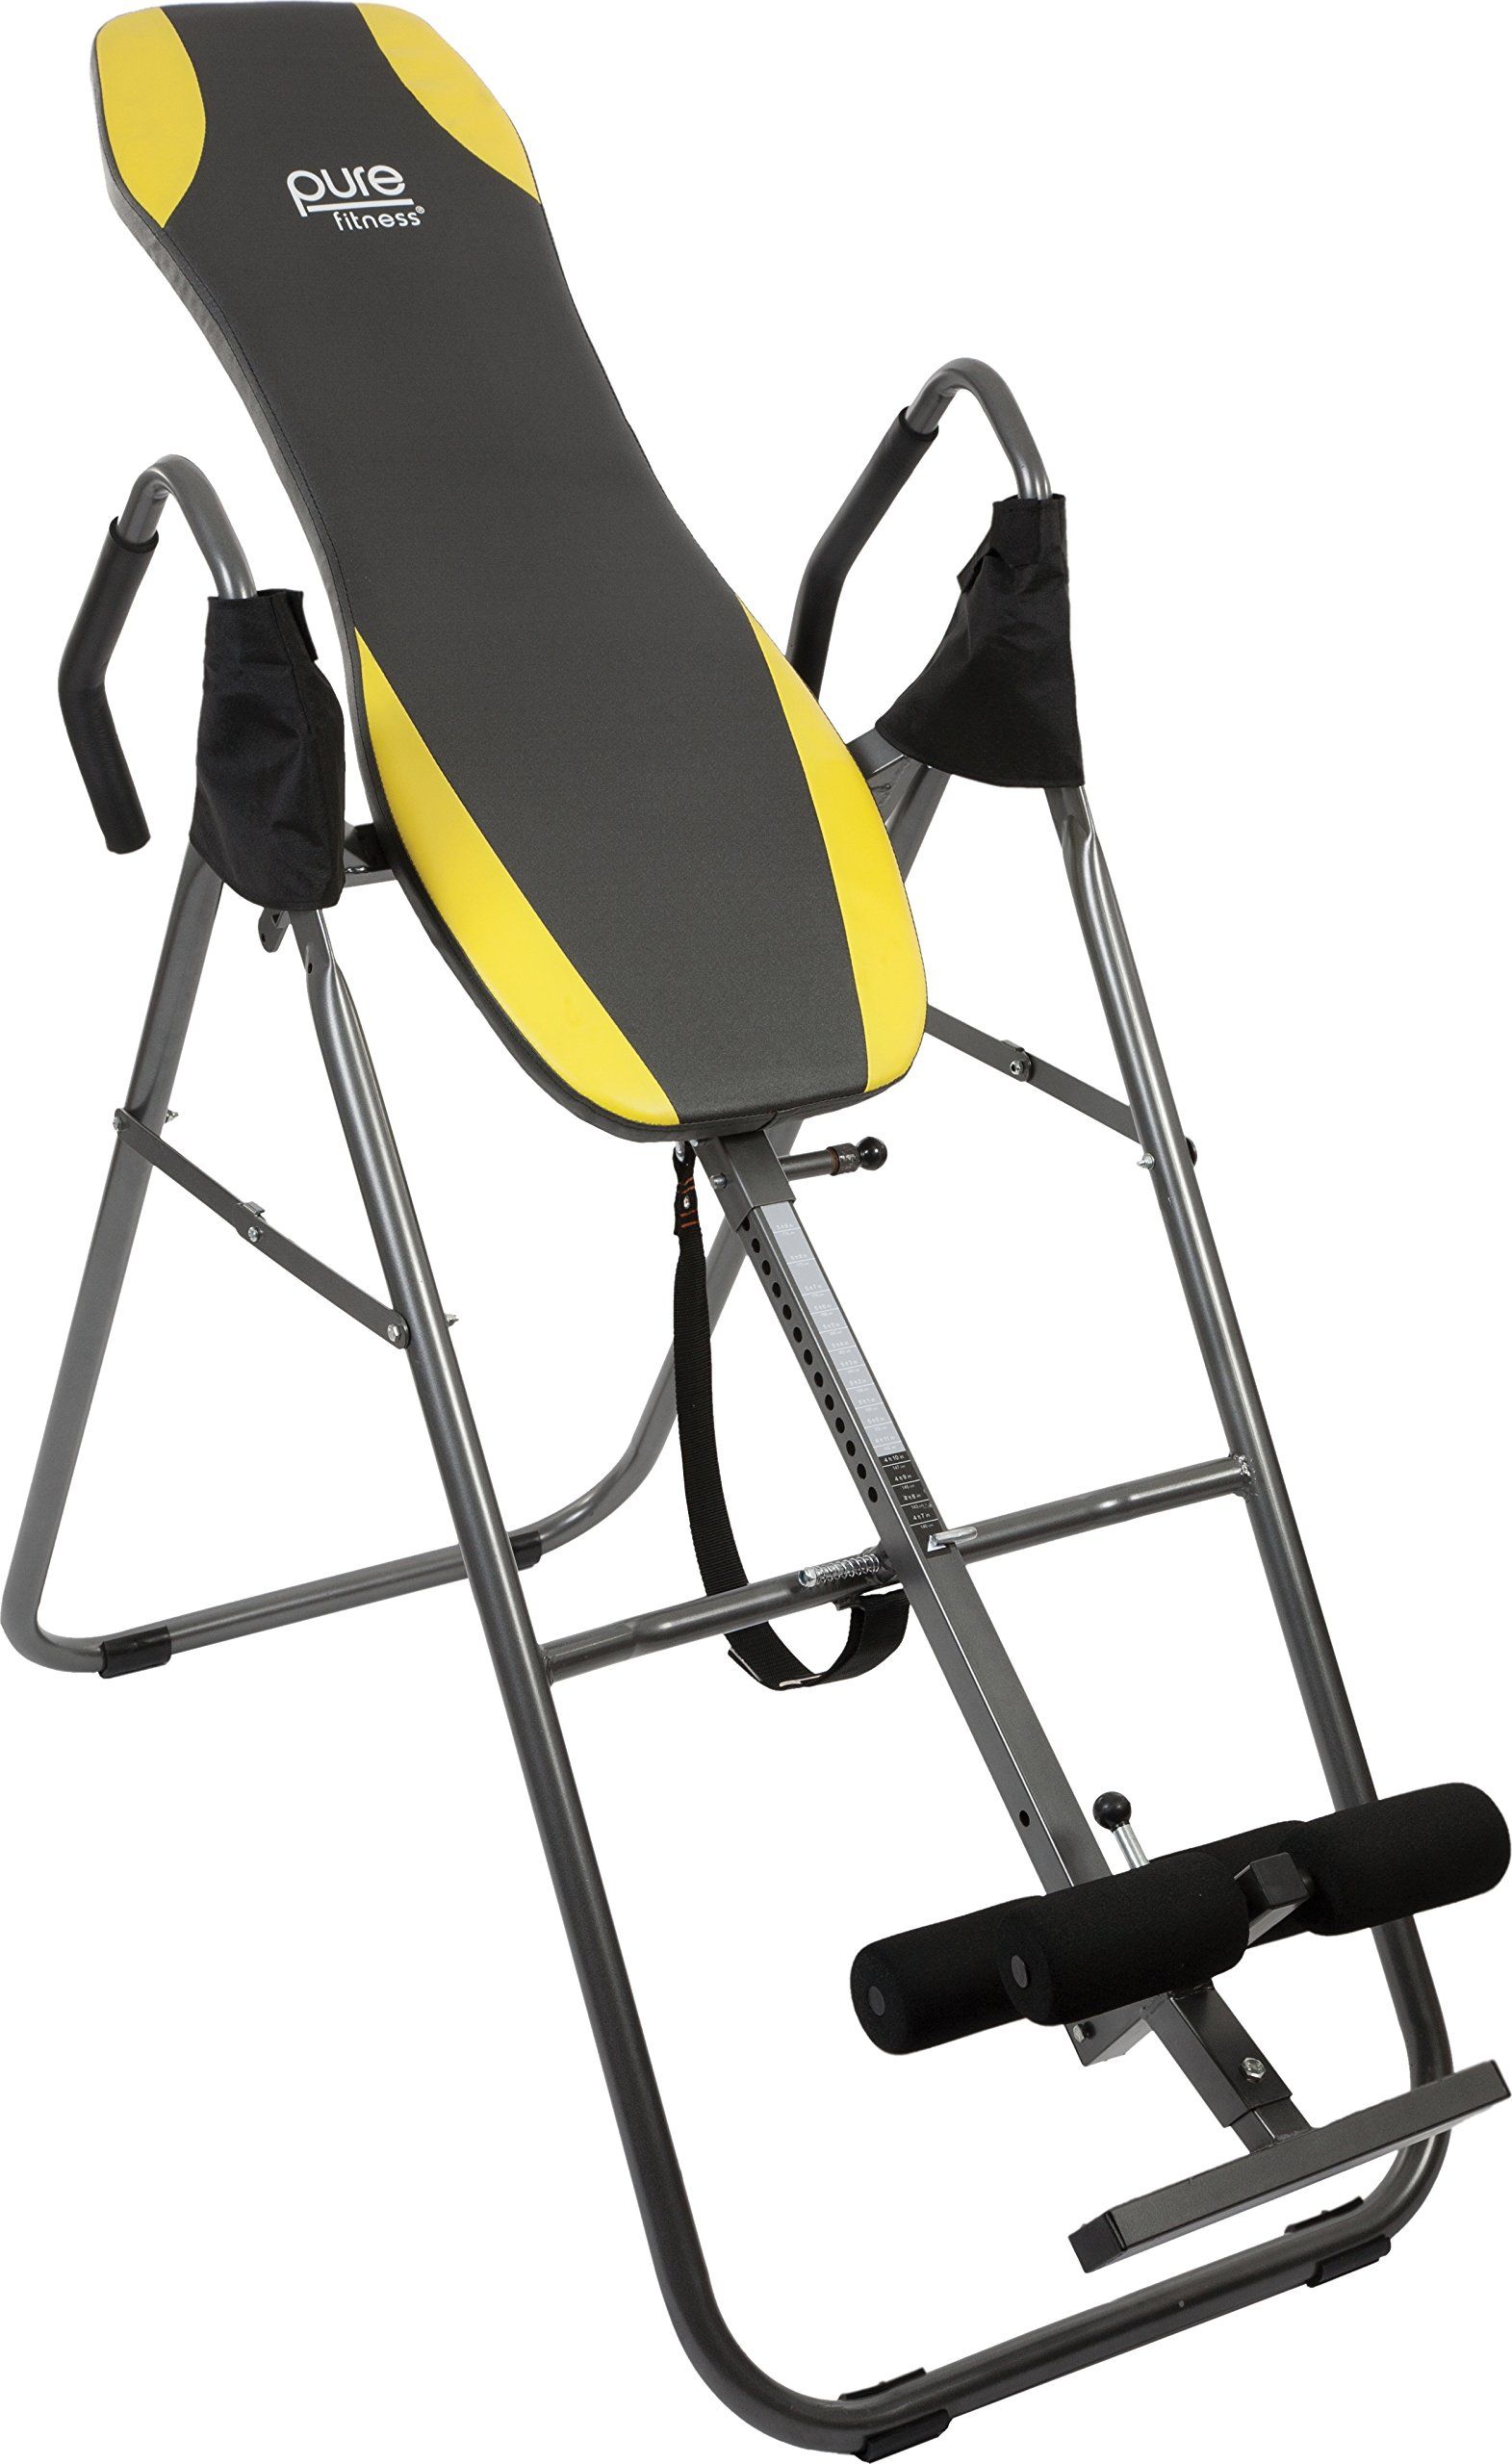 Pure Fitness Gravity Inversion Therapy Table: Adjustable Folding Table, Yellow/Black